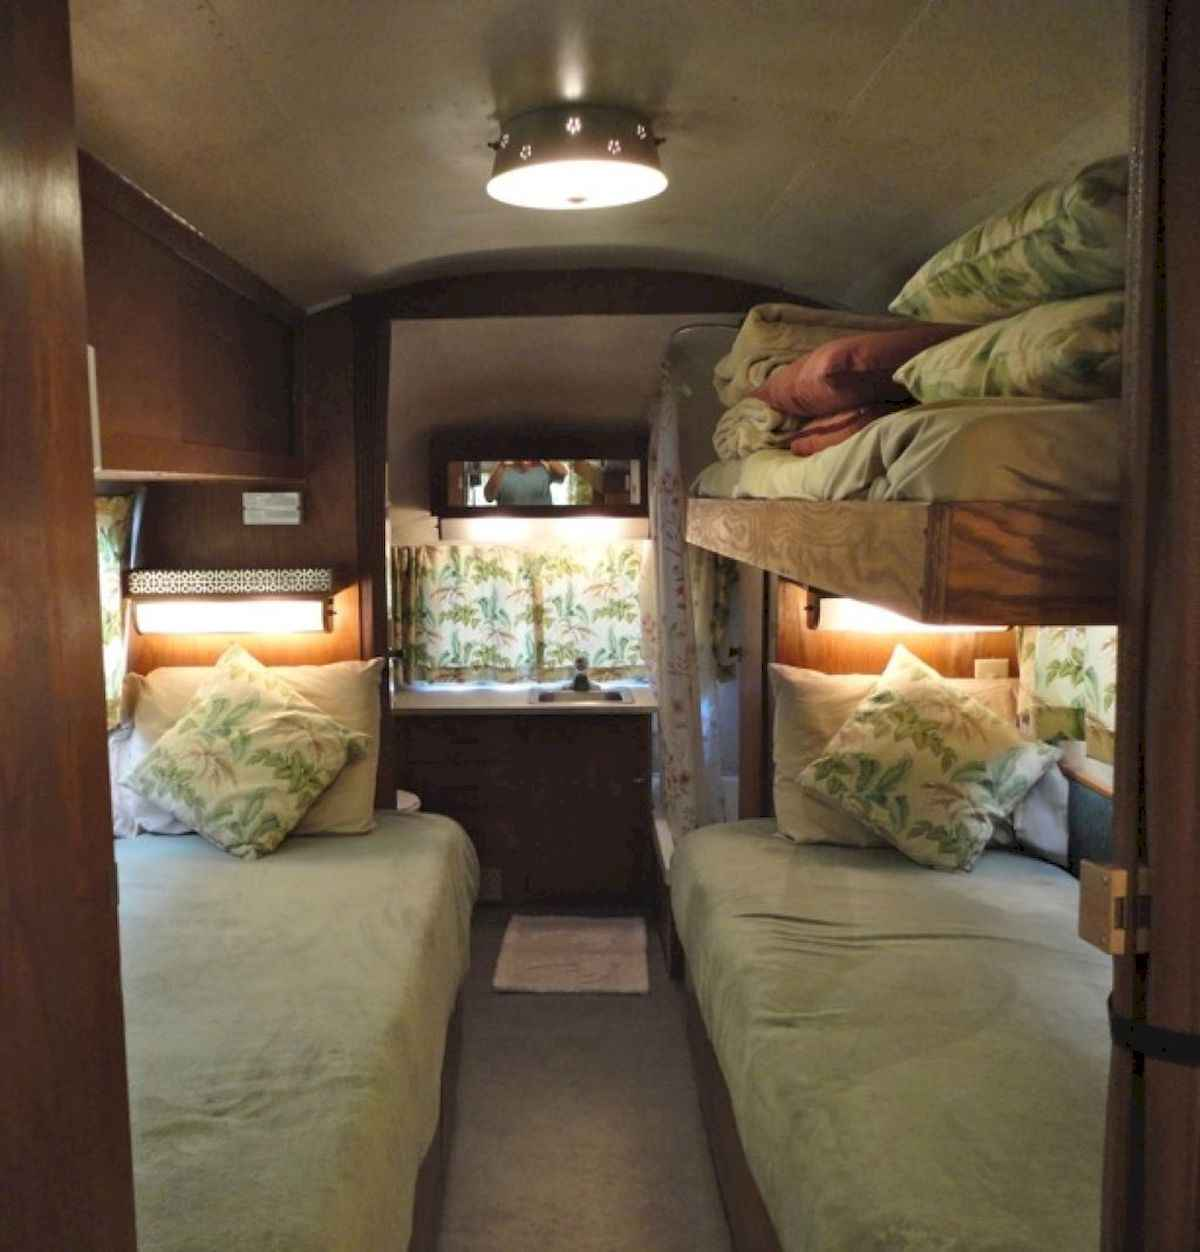 70 Stunning RV Living Camper Room Ideas Decorations Make Your Summer Awesome (8)